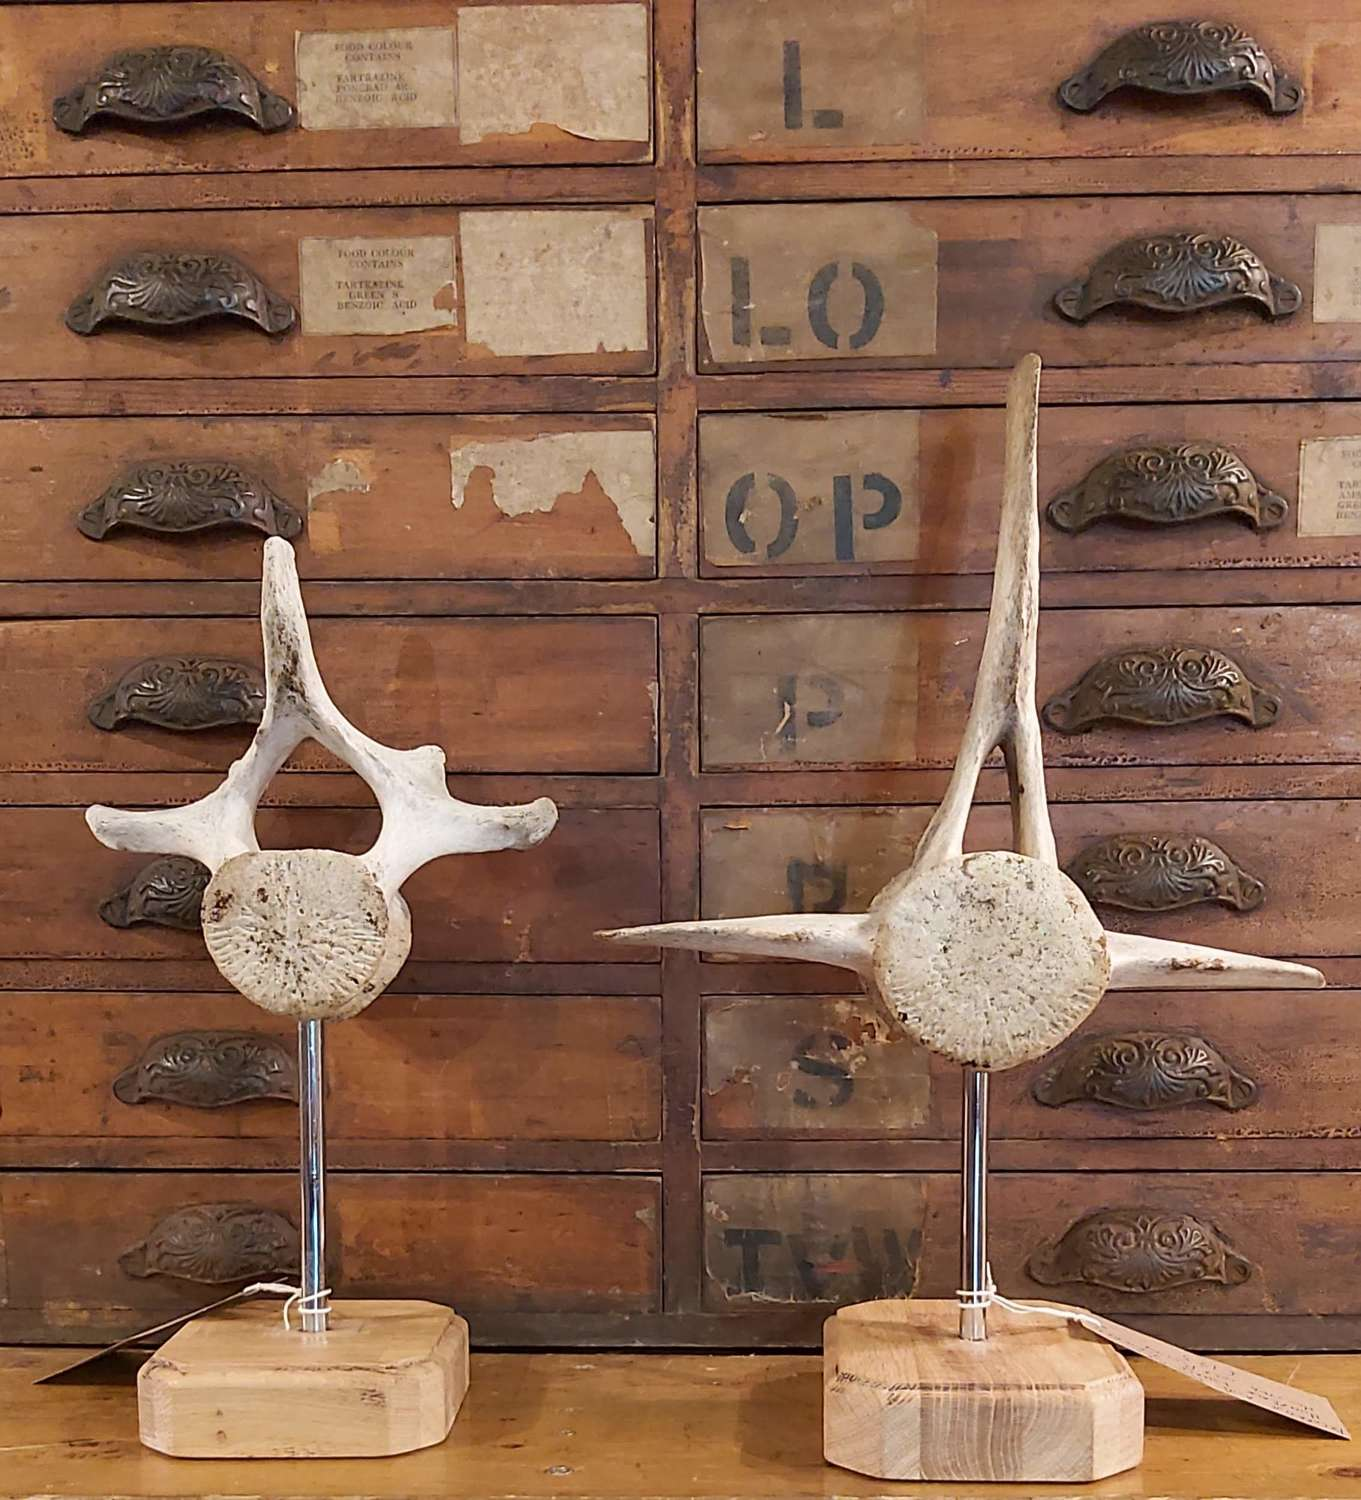 Mounted Humpback Whale vertebrae